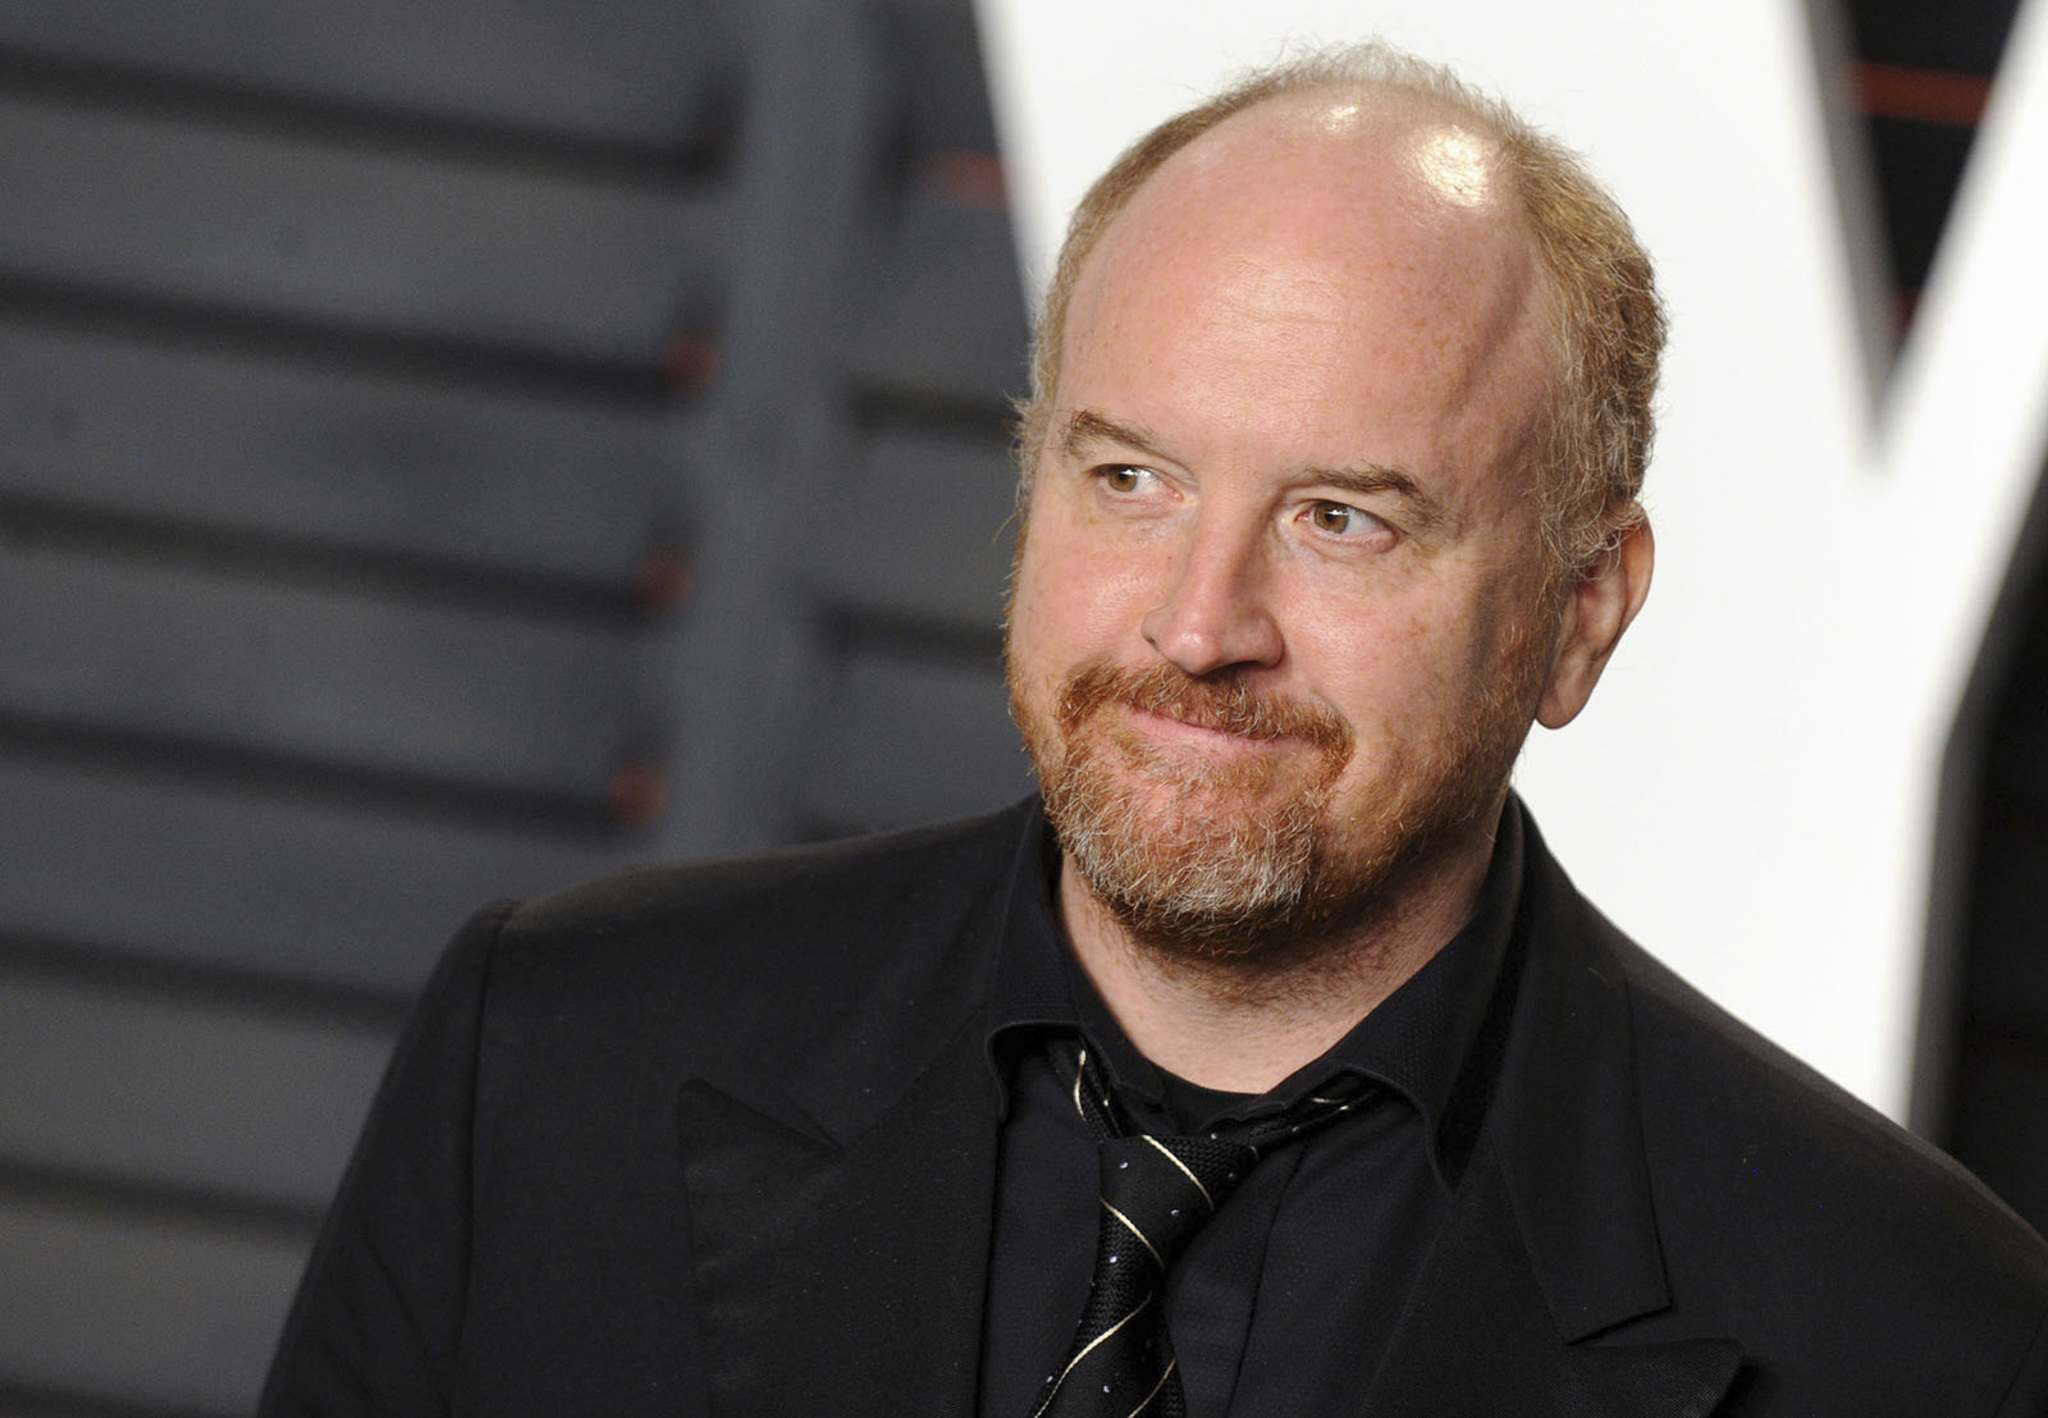 Louis C.K. arrives at the 2016 Vanity Fair Oscar Party on February 28, 2016, in Beverly Hills, Calif. (Dennis Van Tine/UPPA/Zuma Press/TNS)</p>